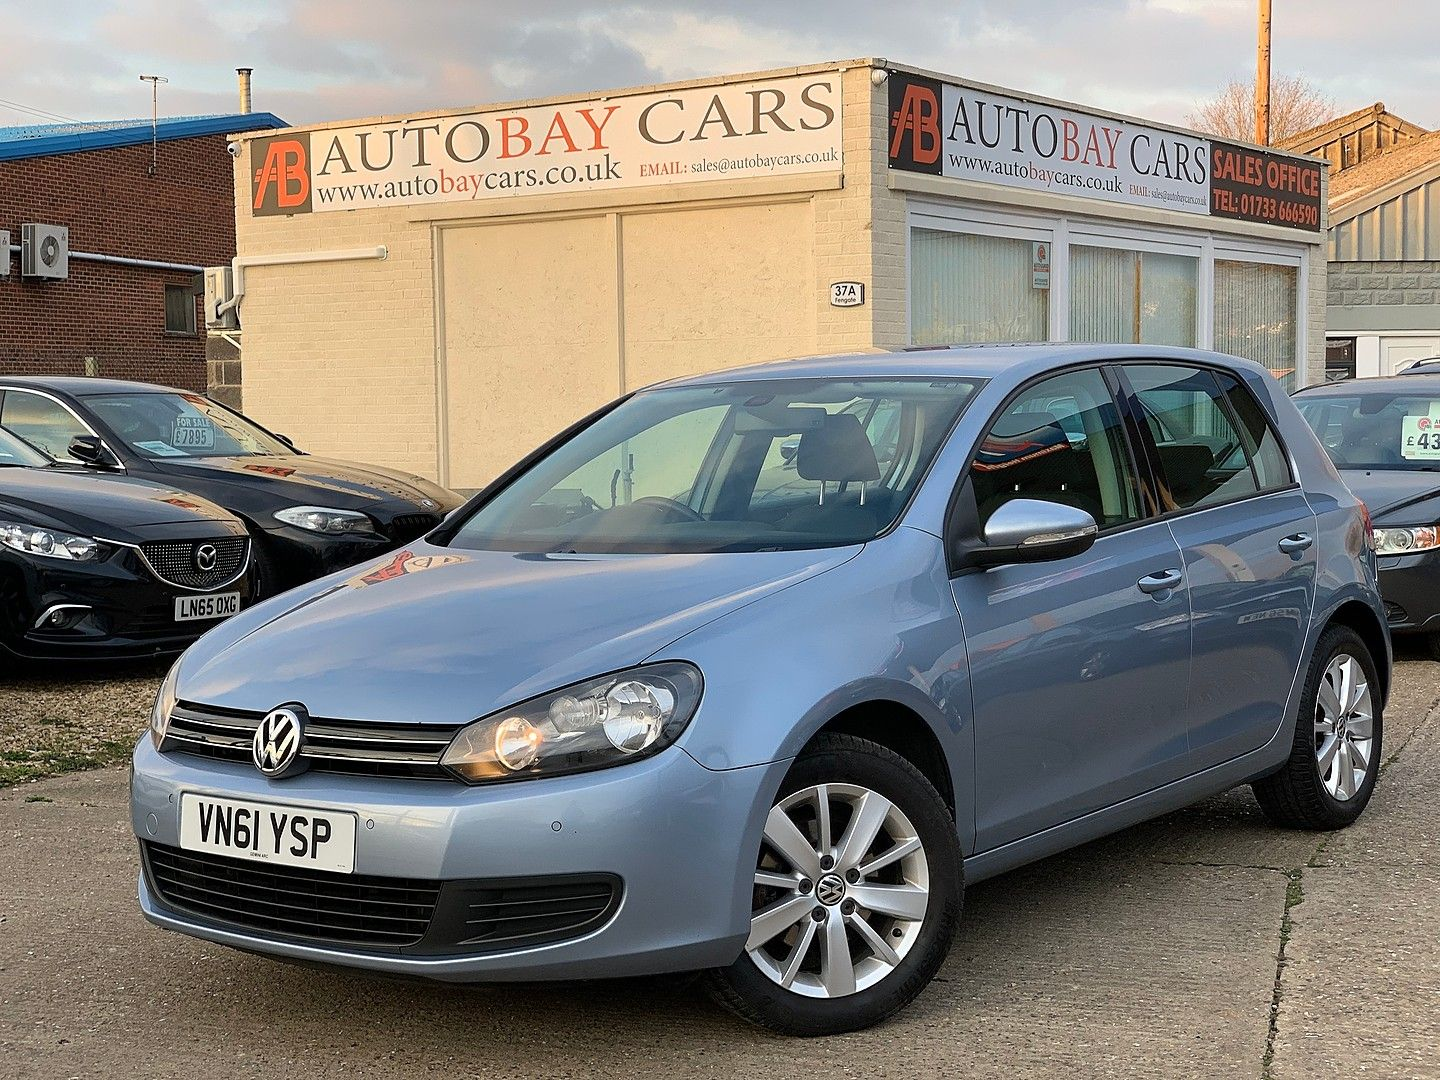 VOLKSWAGENGolfMatch TDI 1.6 105 PS for sale